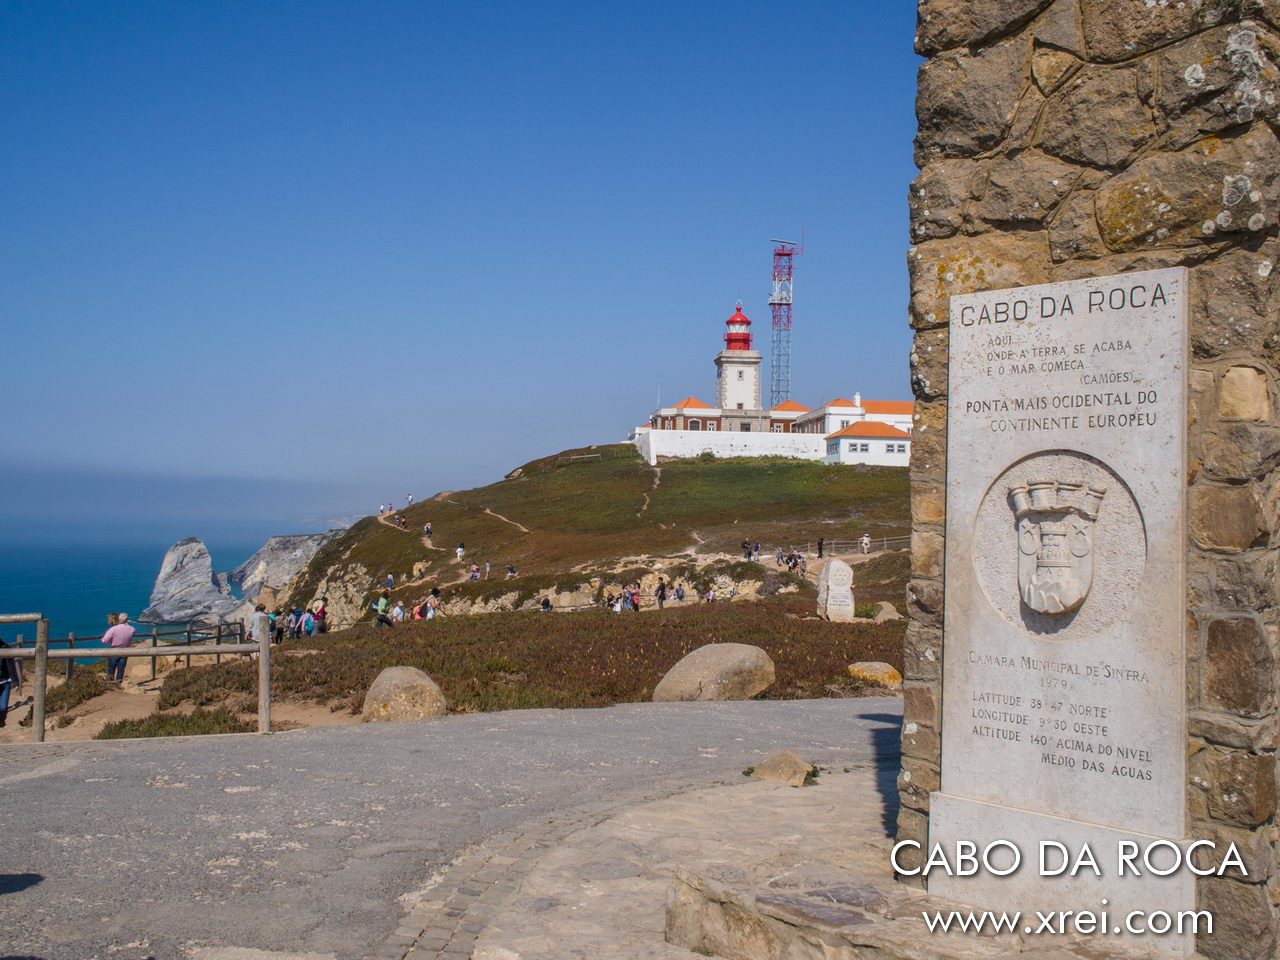 Cabo da Roca is the most westerly point in Europe, being also called Cabo da Ofiussa, Cabo da Serpente or Promontório da Lua. It is a place of great energy, with a fantastic view over the ocean and the force of the sea that hits the cliffs .